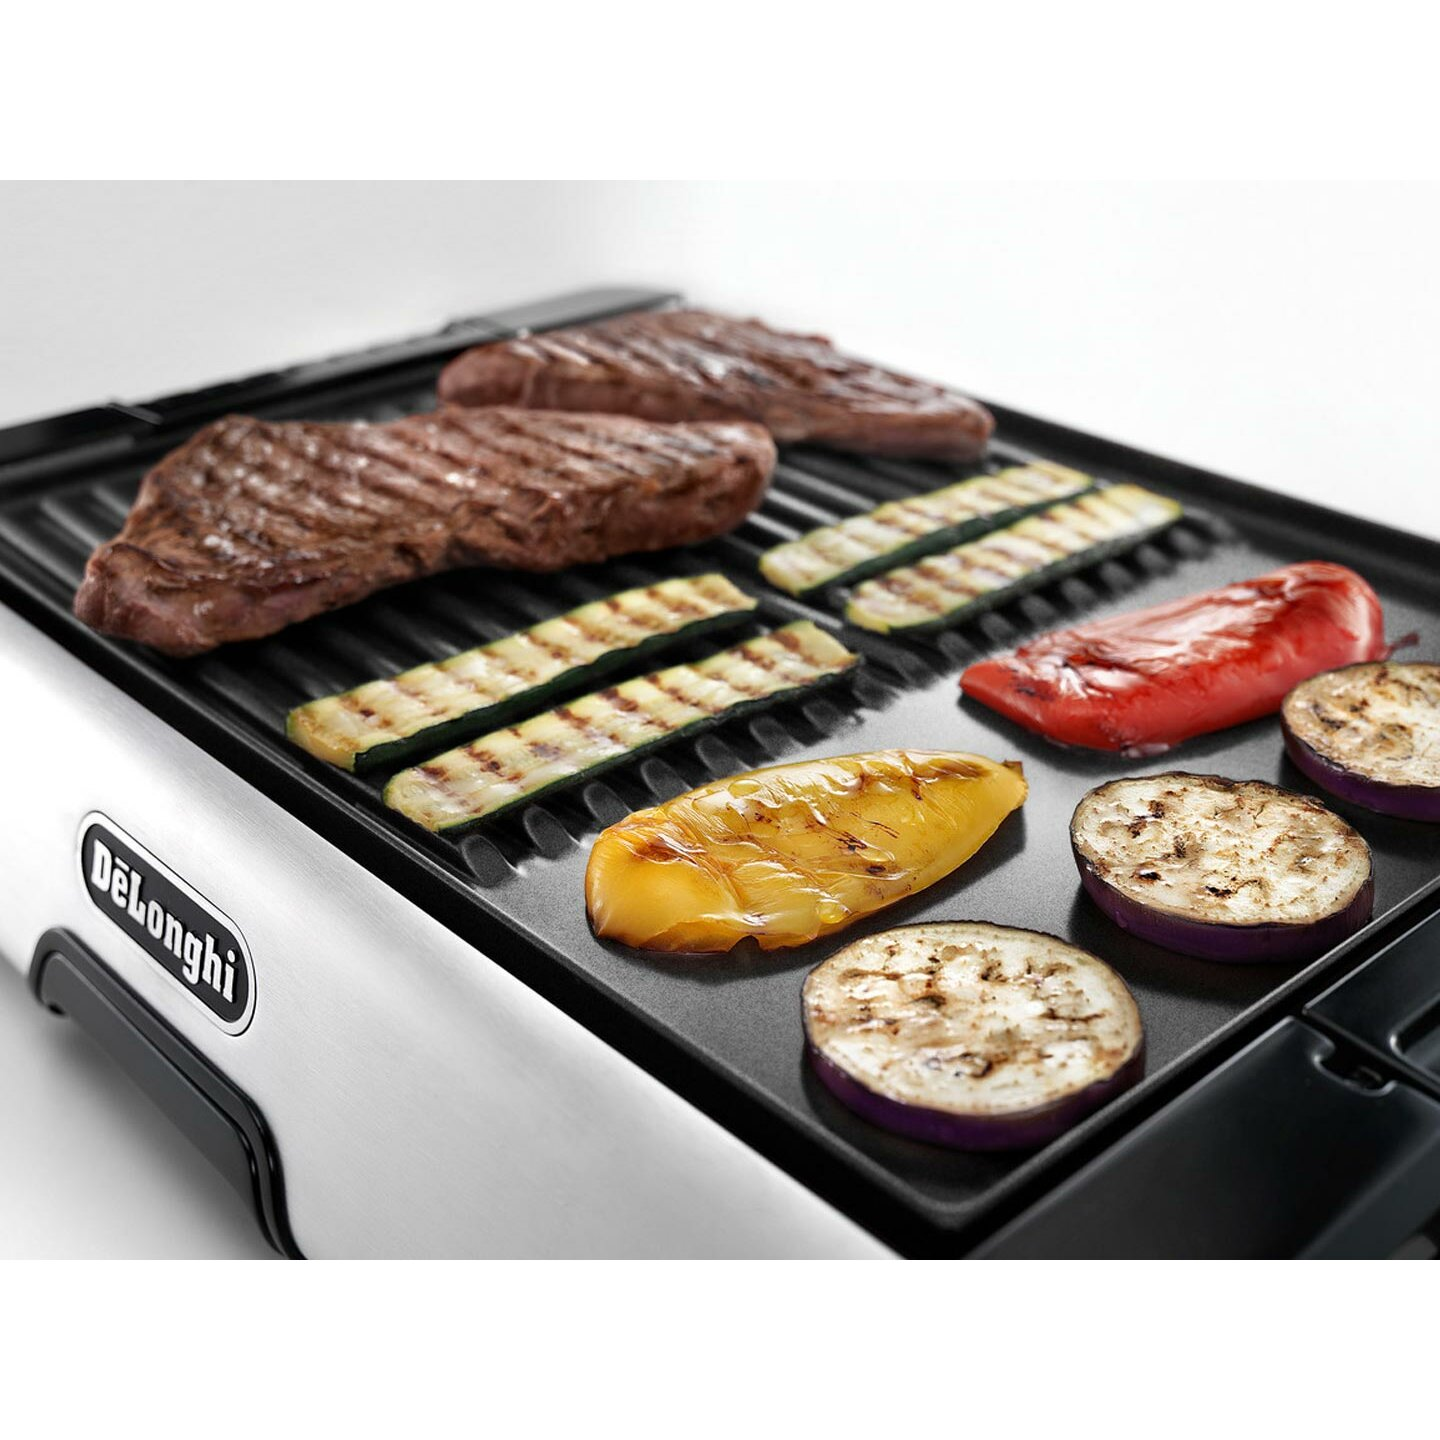 Non Stick Kitchen Appliances Delonghi Indoor 2 In 1 Non Stick Ceramic Coated Grill And Griddle